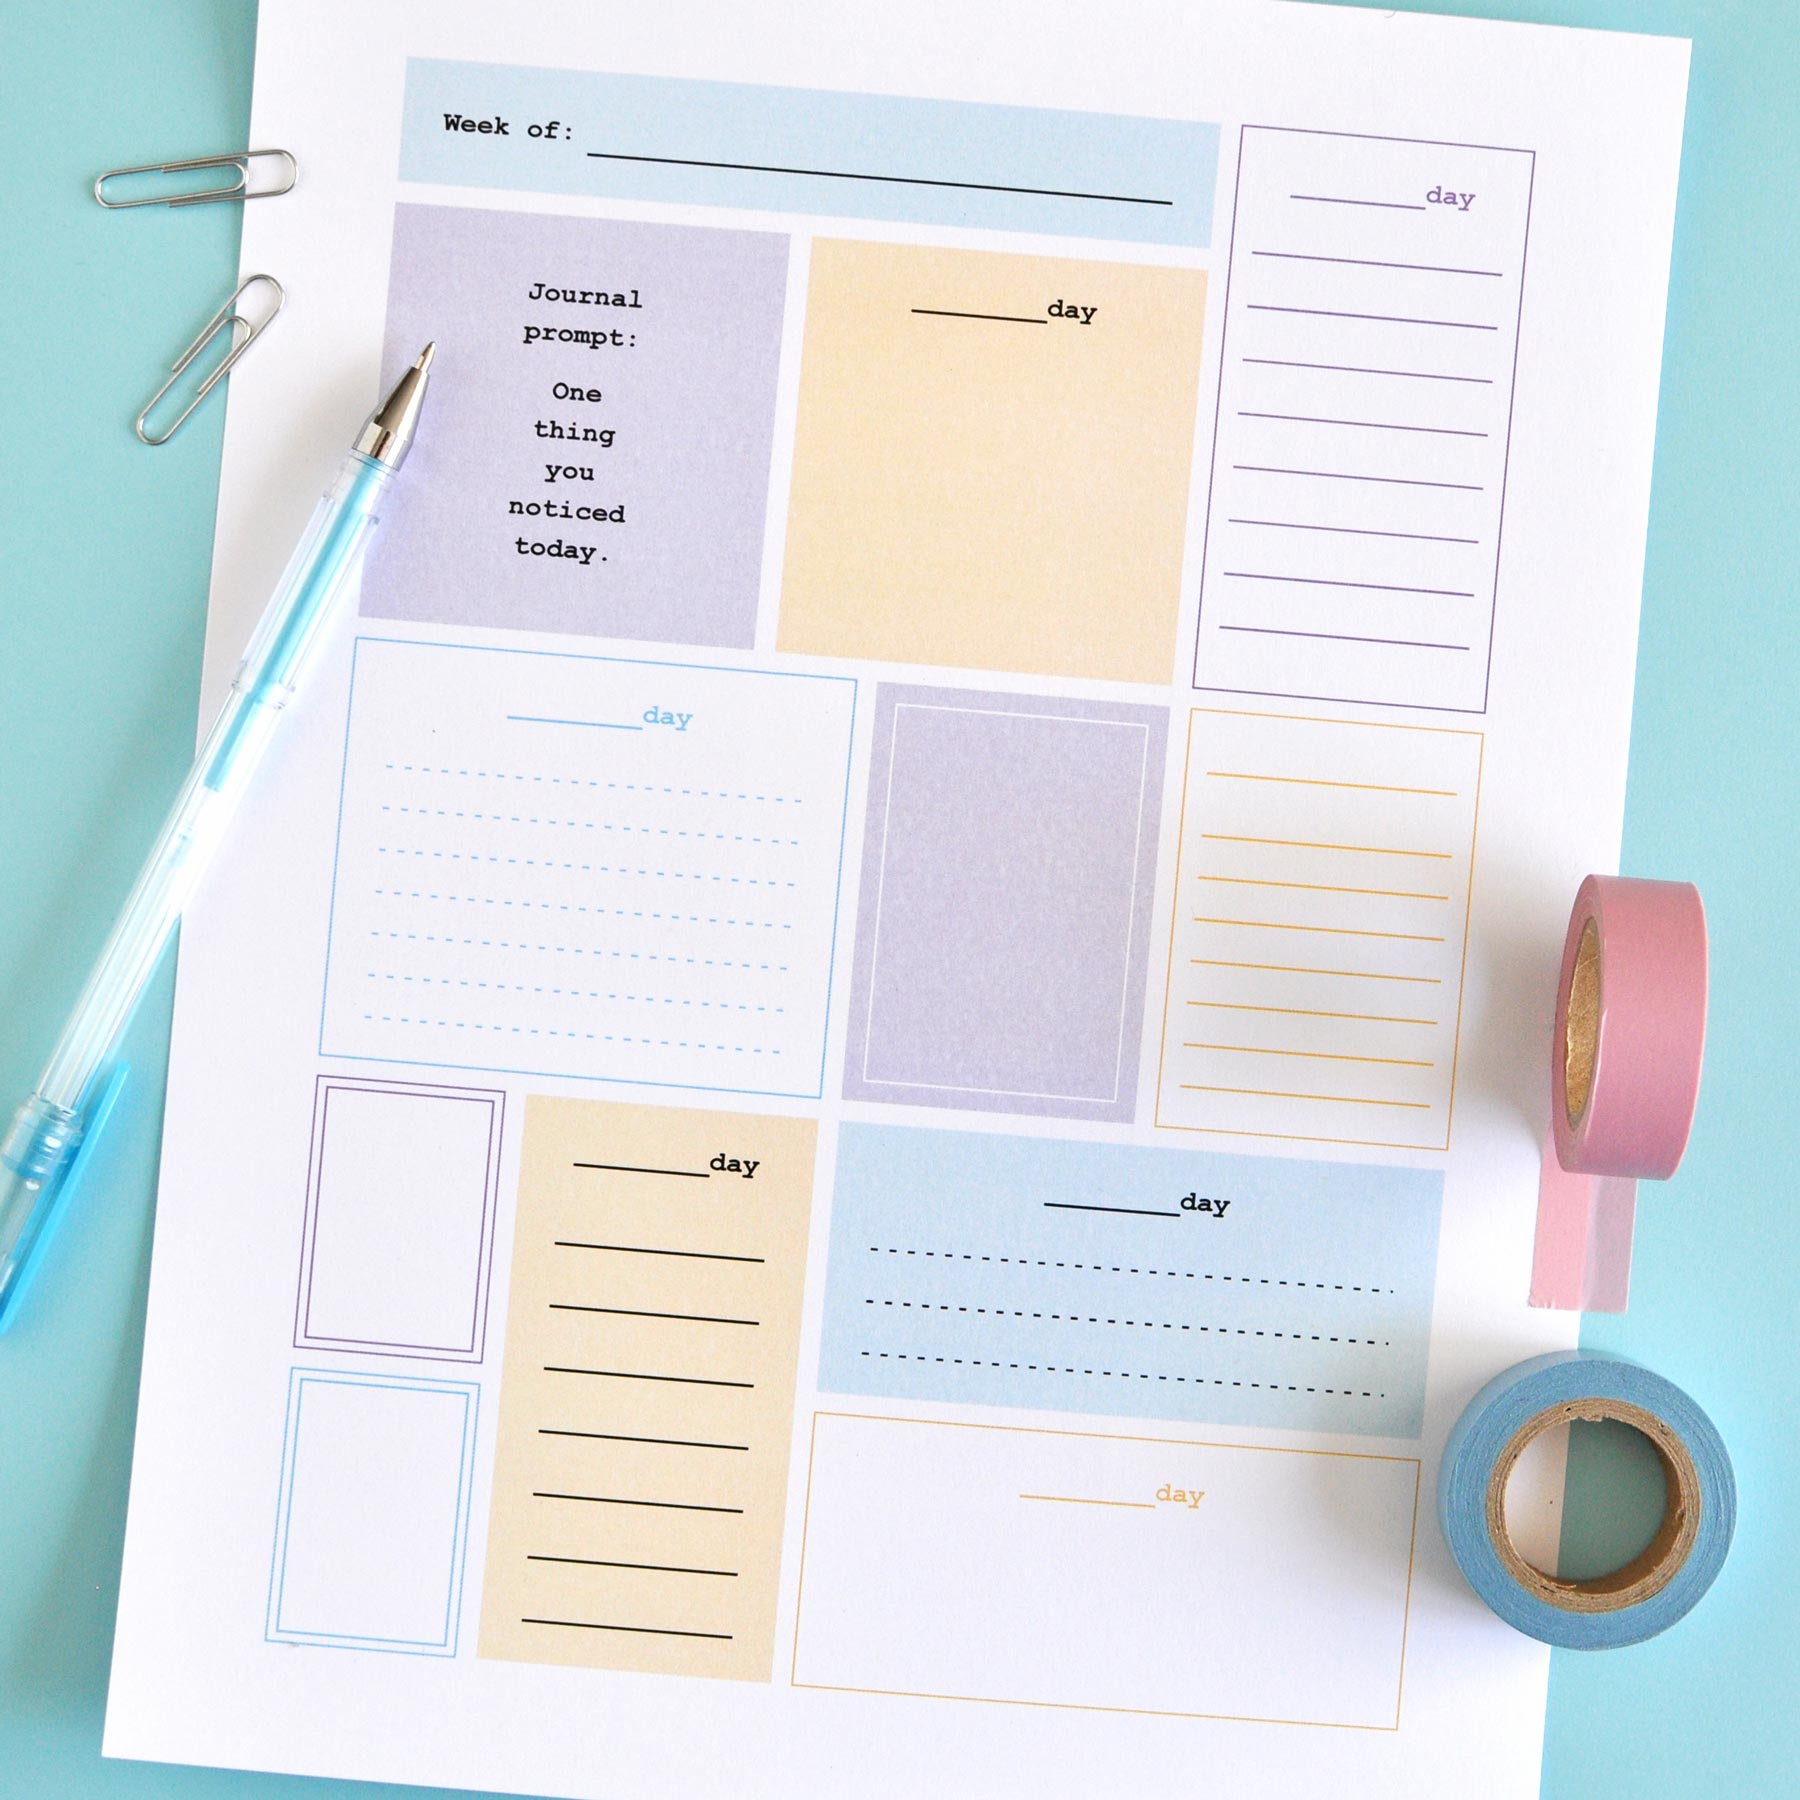 07-05-2018-Printable-journal-page-by-Christie-Zimmer.jpg